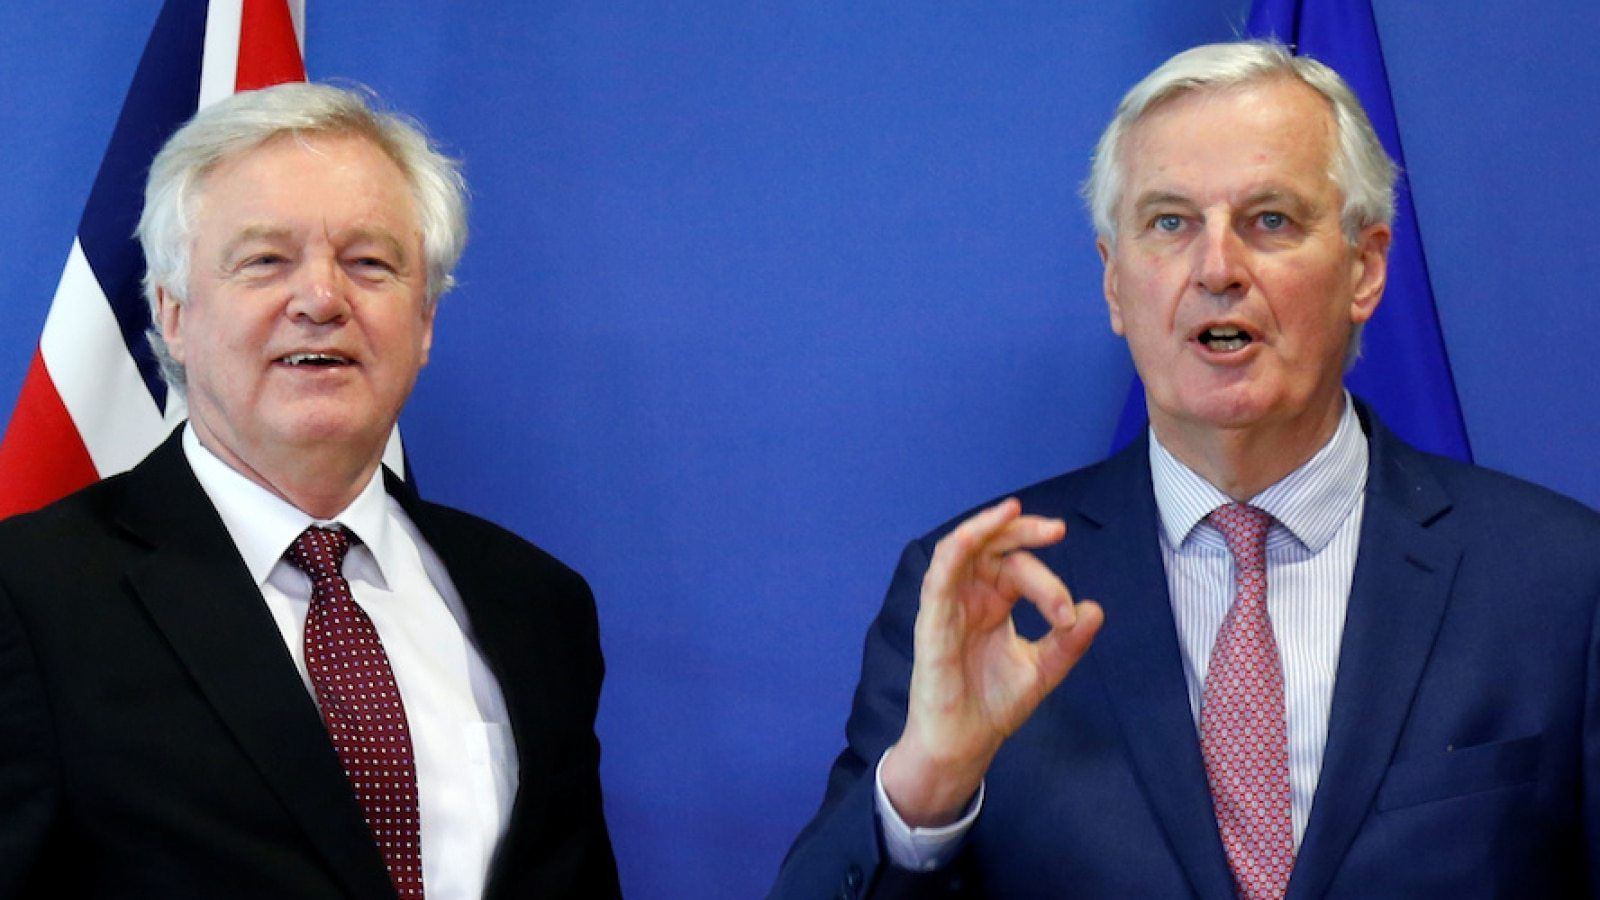 Barnier Hails 'Large Part of Brexit Work COMPLETE' as Transition Limited